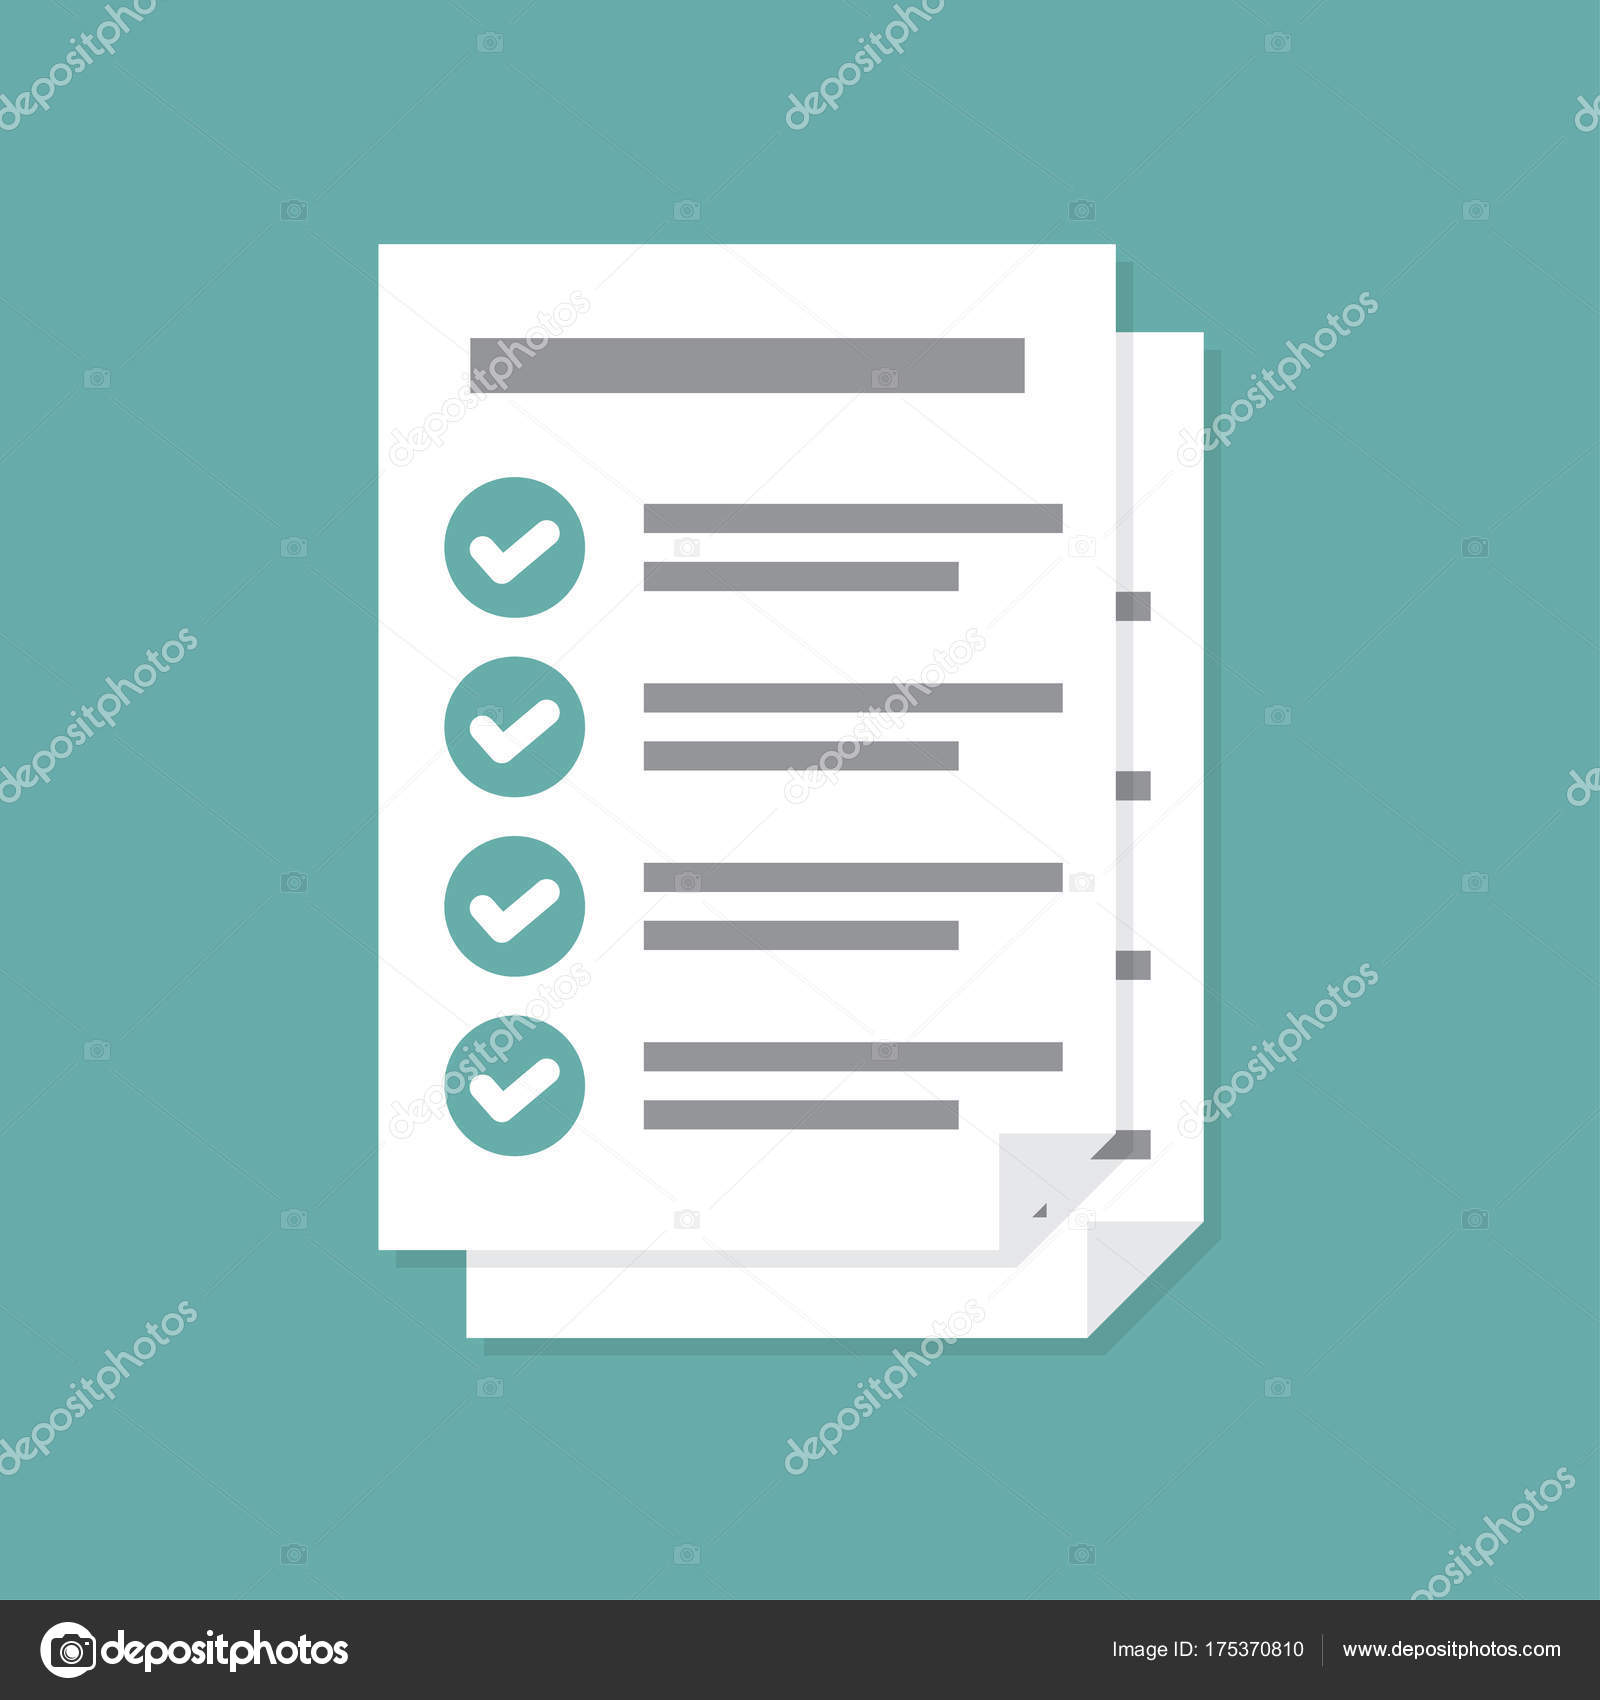 documents icon. stack of paper sheets. confirmed or approved